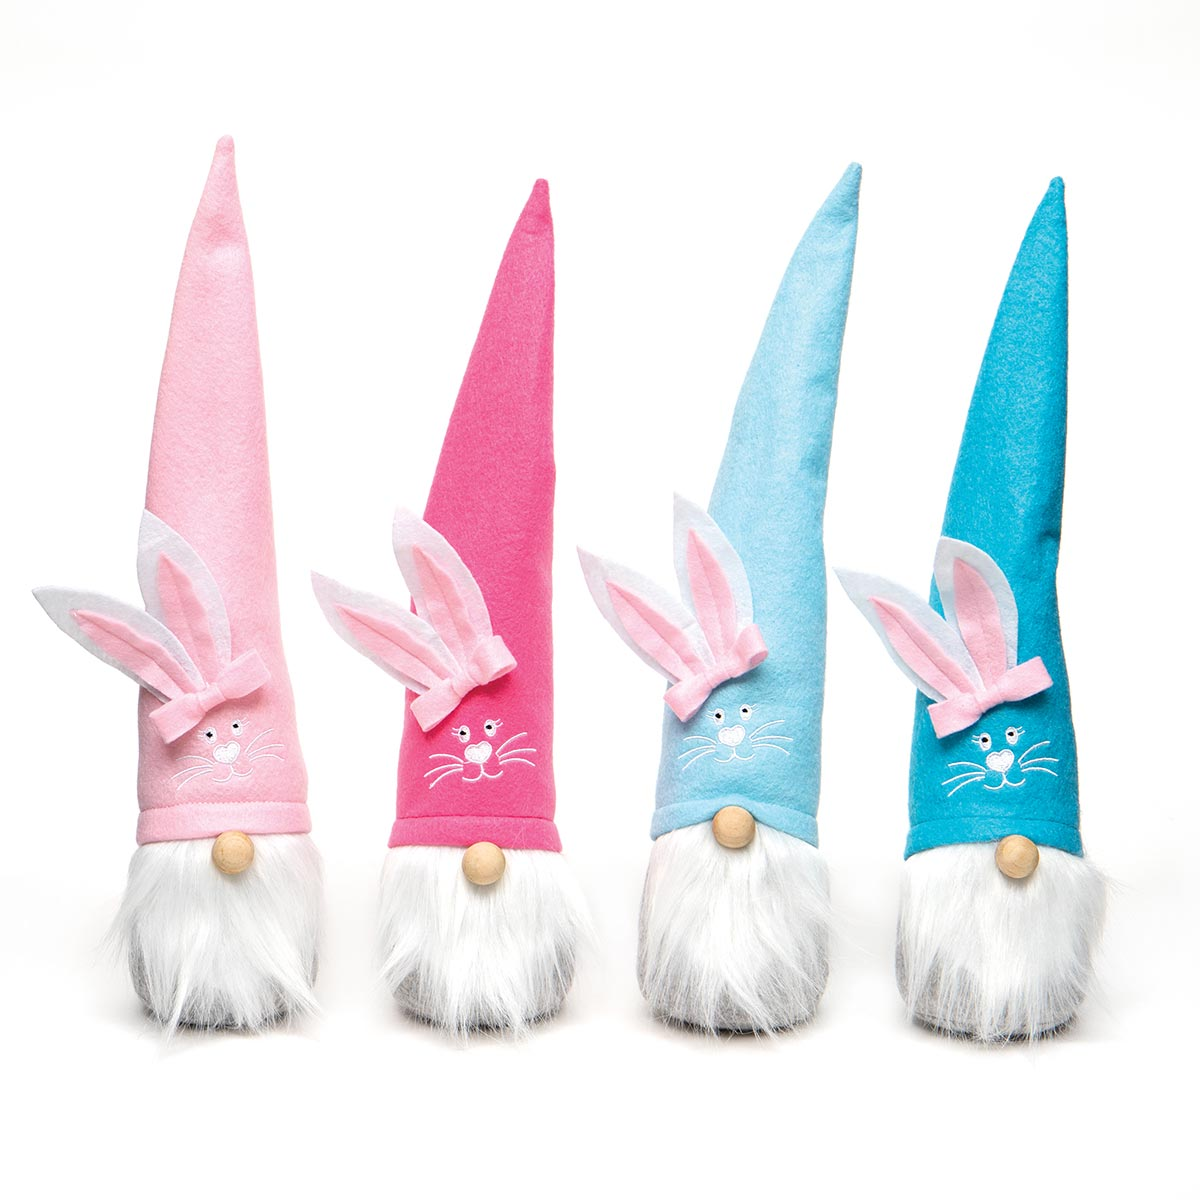 FUNNY BUNNY FACE GNOME WITH BUNNY EARS HAT, WOOD NOSE AND